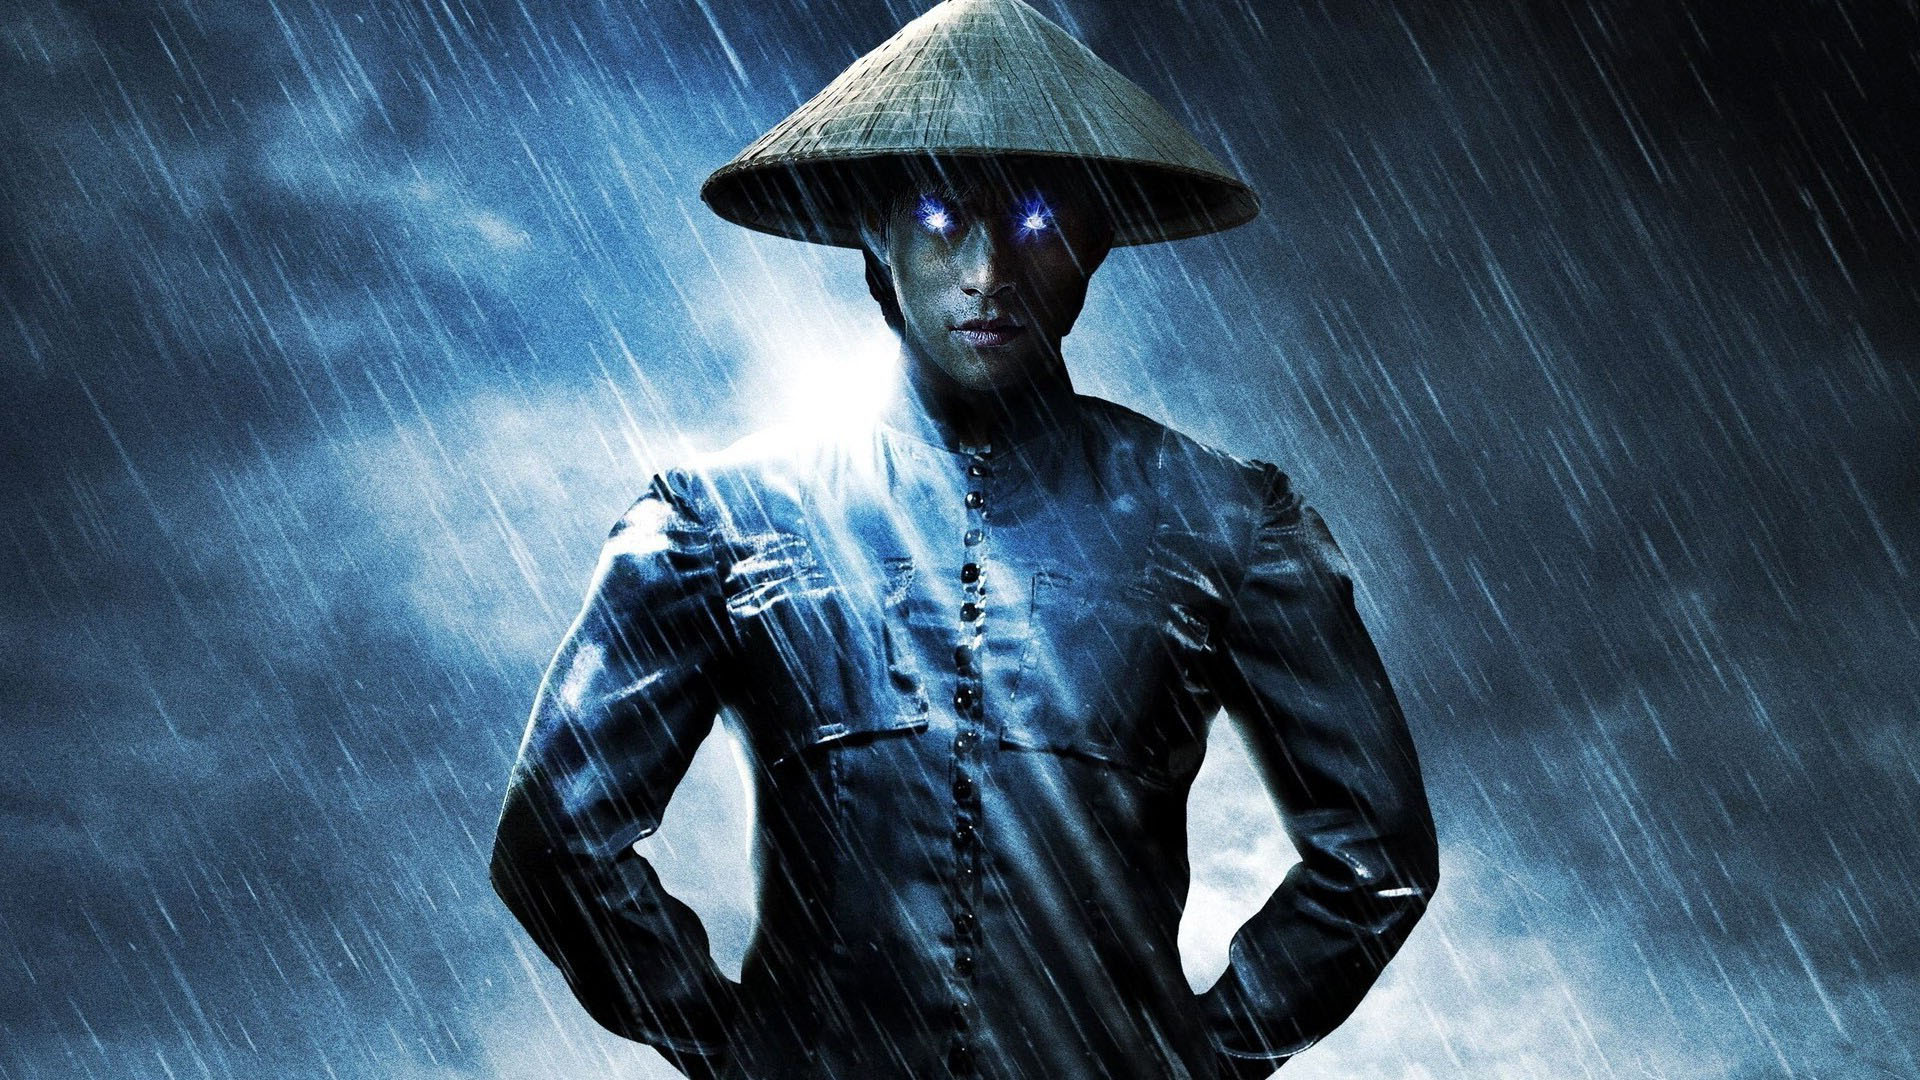 Mortal Kombat Raiden Wallpaper